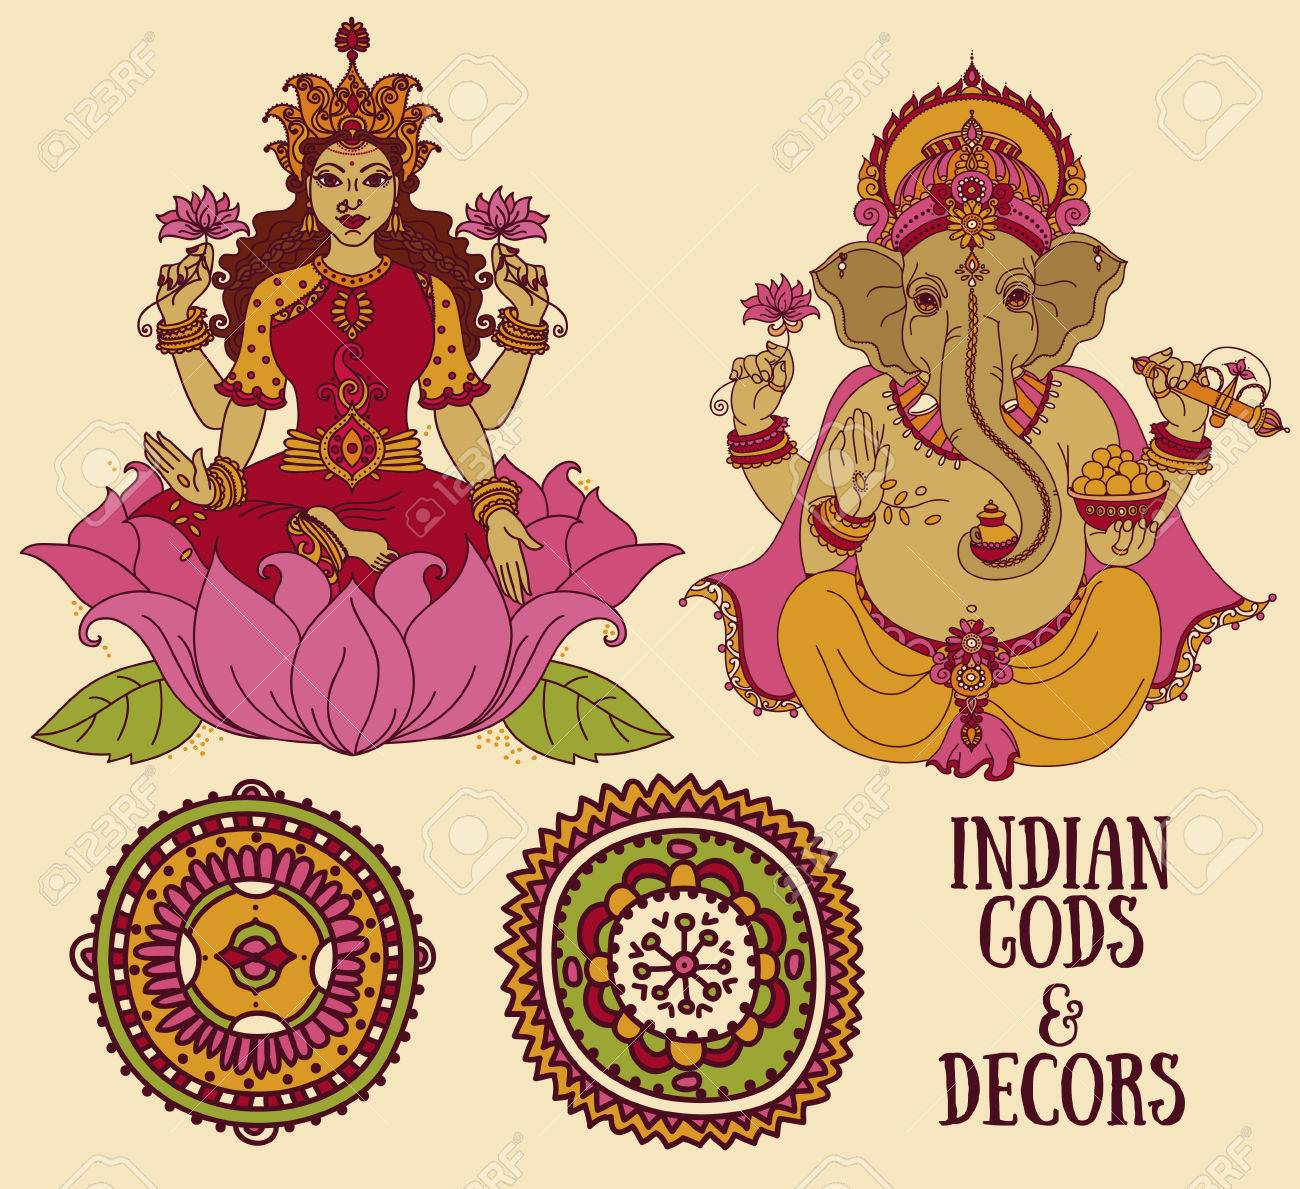 Set Of Vector Illustrations With Sitting Lord Ganesha And Indian Goddes Lakshmi Royalty Free Cliparts Vectors And Stock Illustration Image 72172984